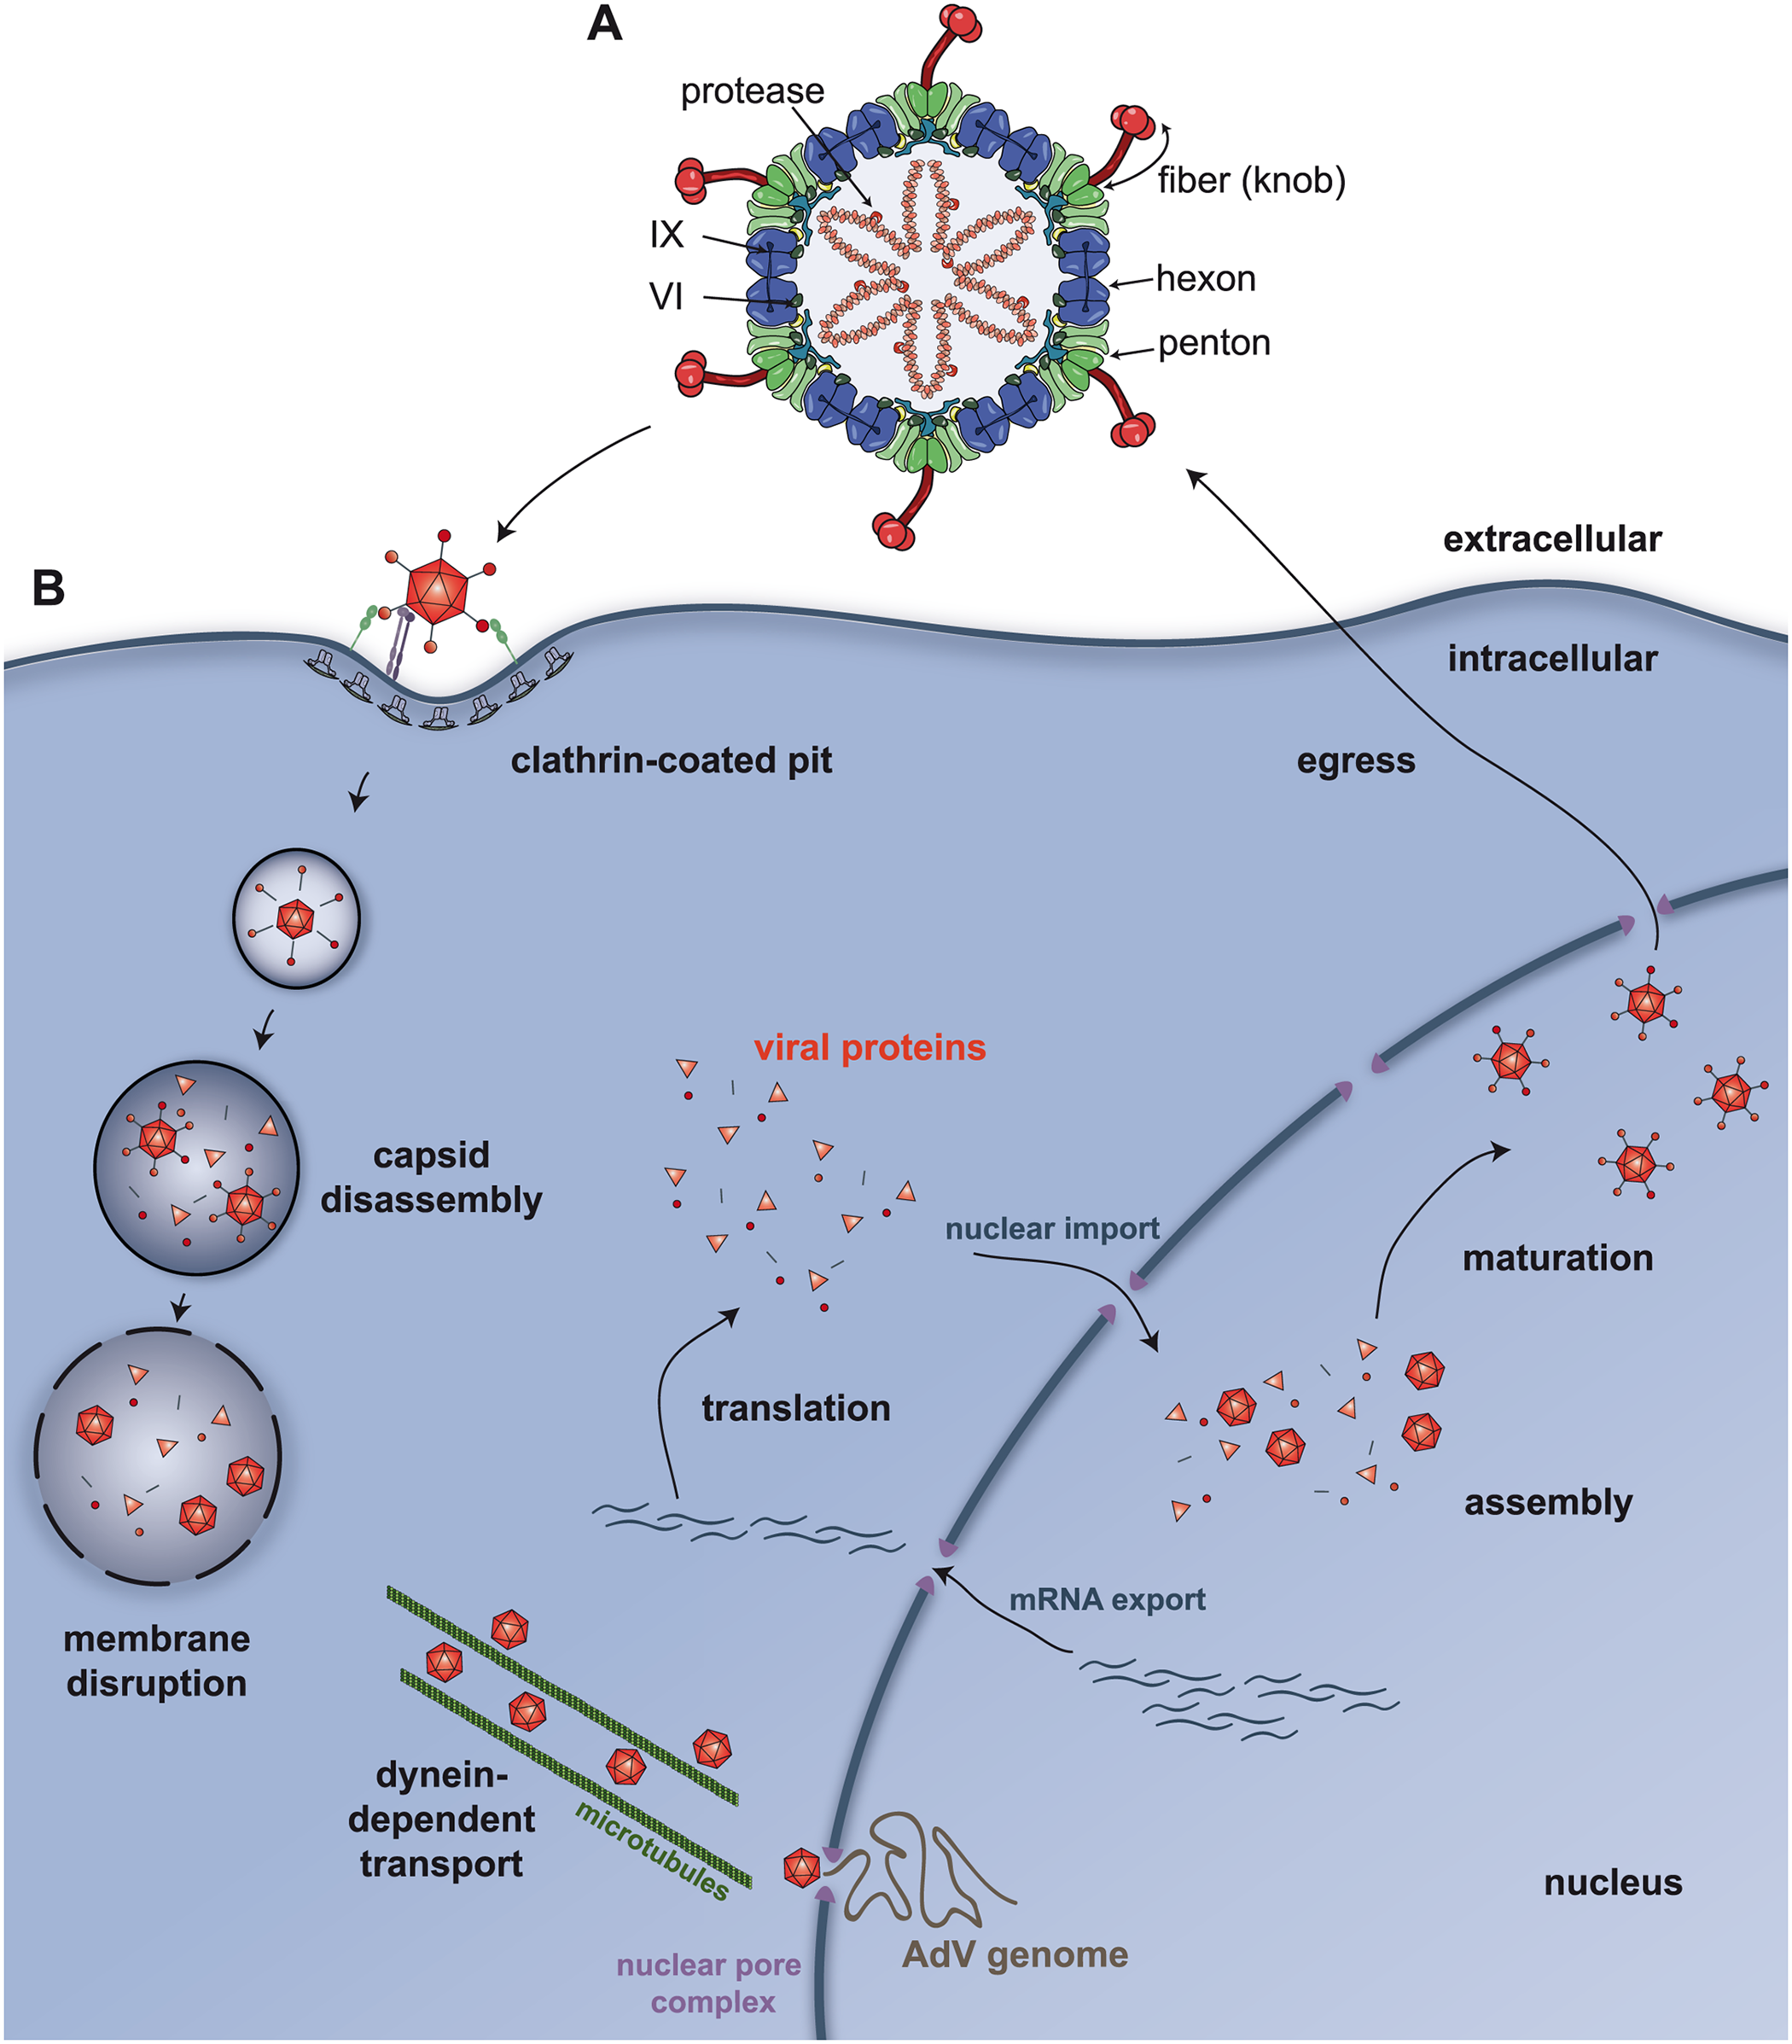 Adenovirus structure and trafficking.